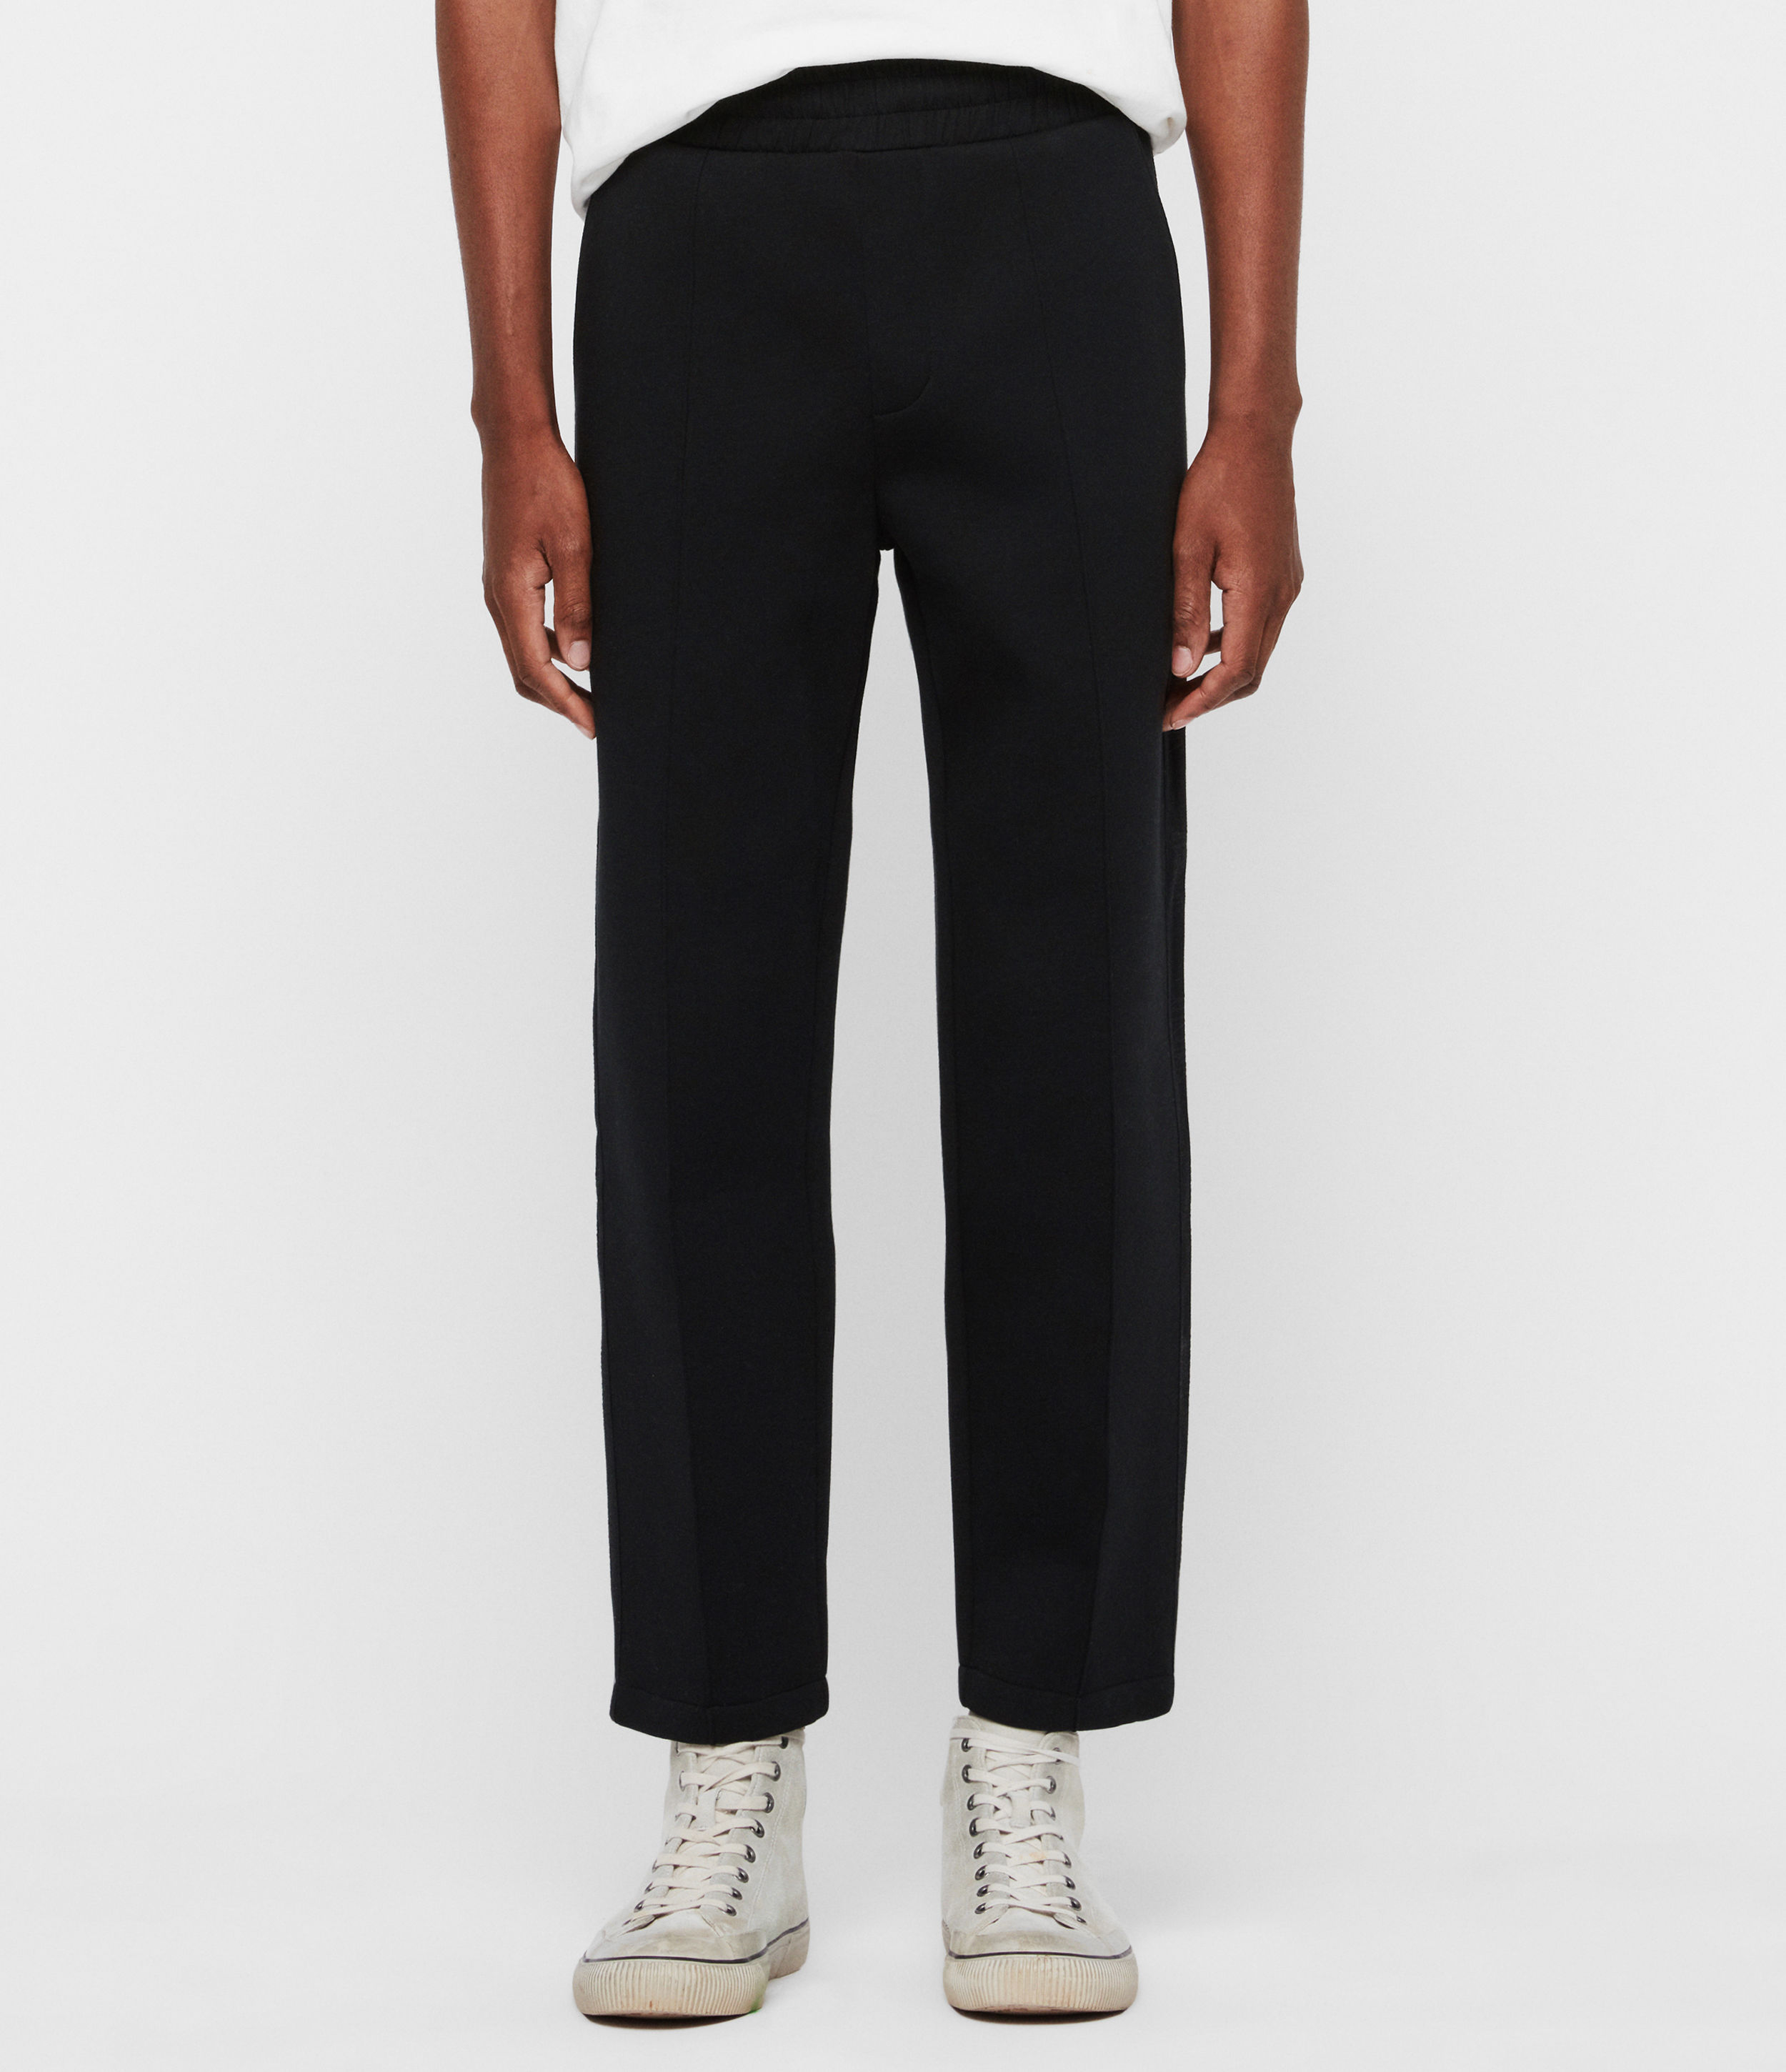 AllSaints Men's Cotton Relaxed Fit Hayford Cropped Tapered Sweatpants, Black, Size: M